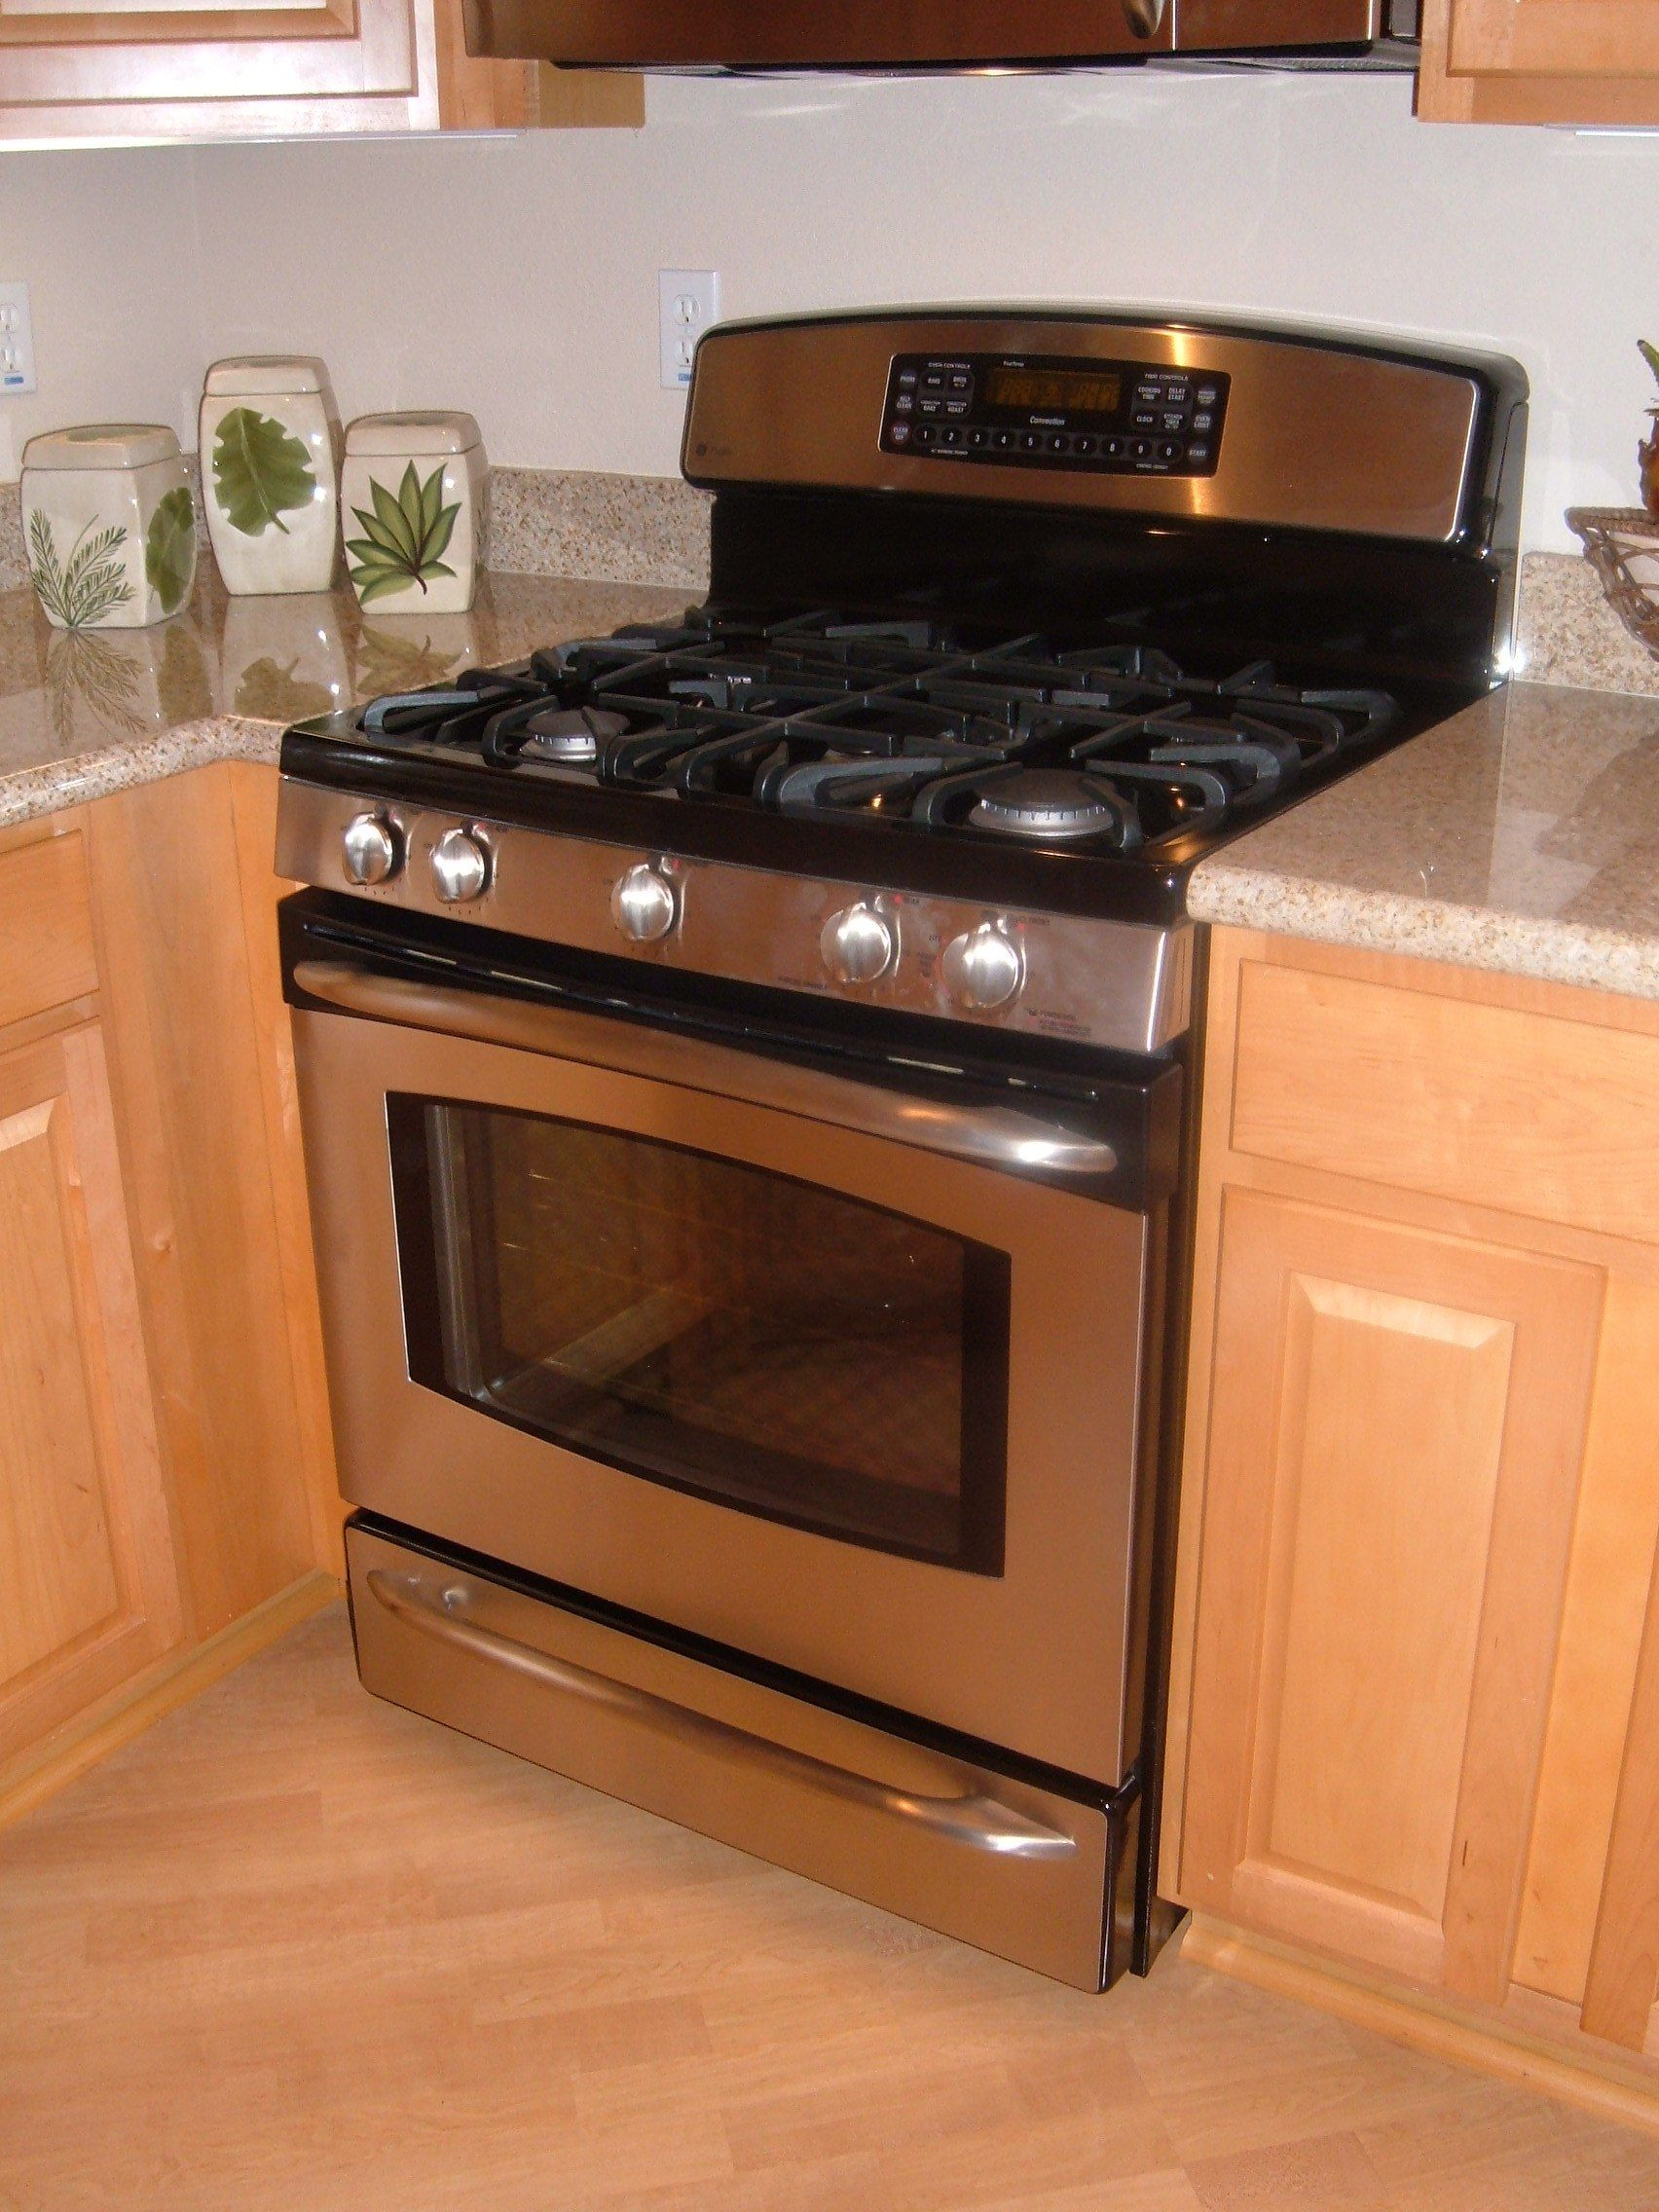 8 Advantages Of Gas Ranges Dual Fuel Over Electric 36 Inch Range